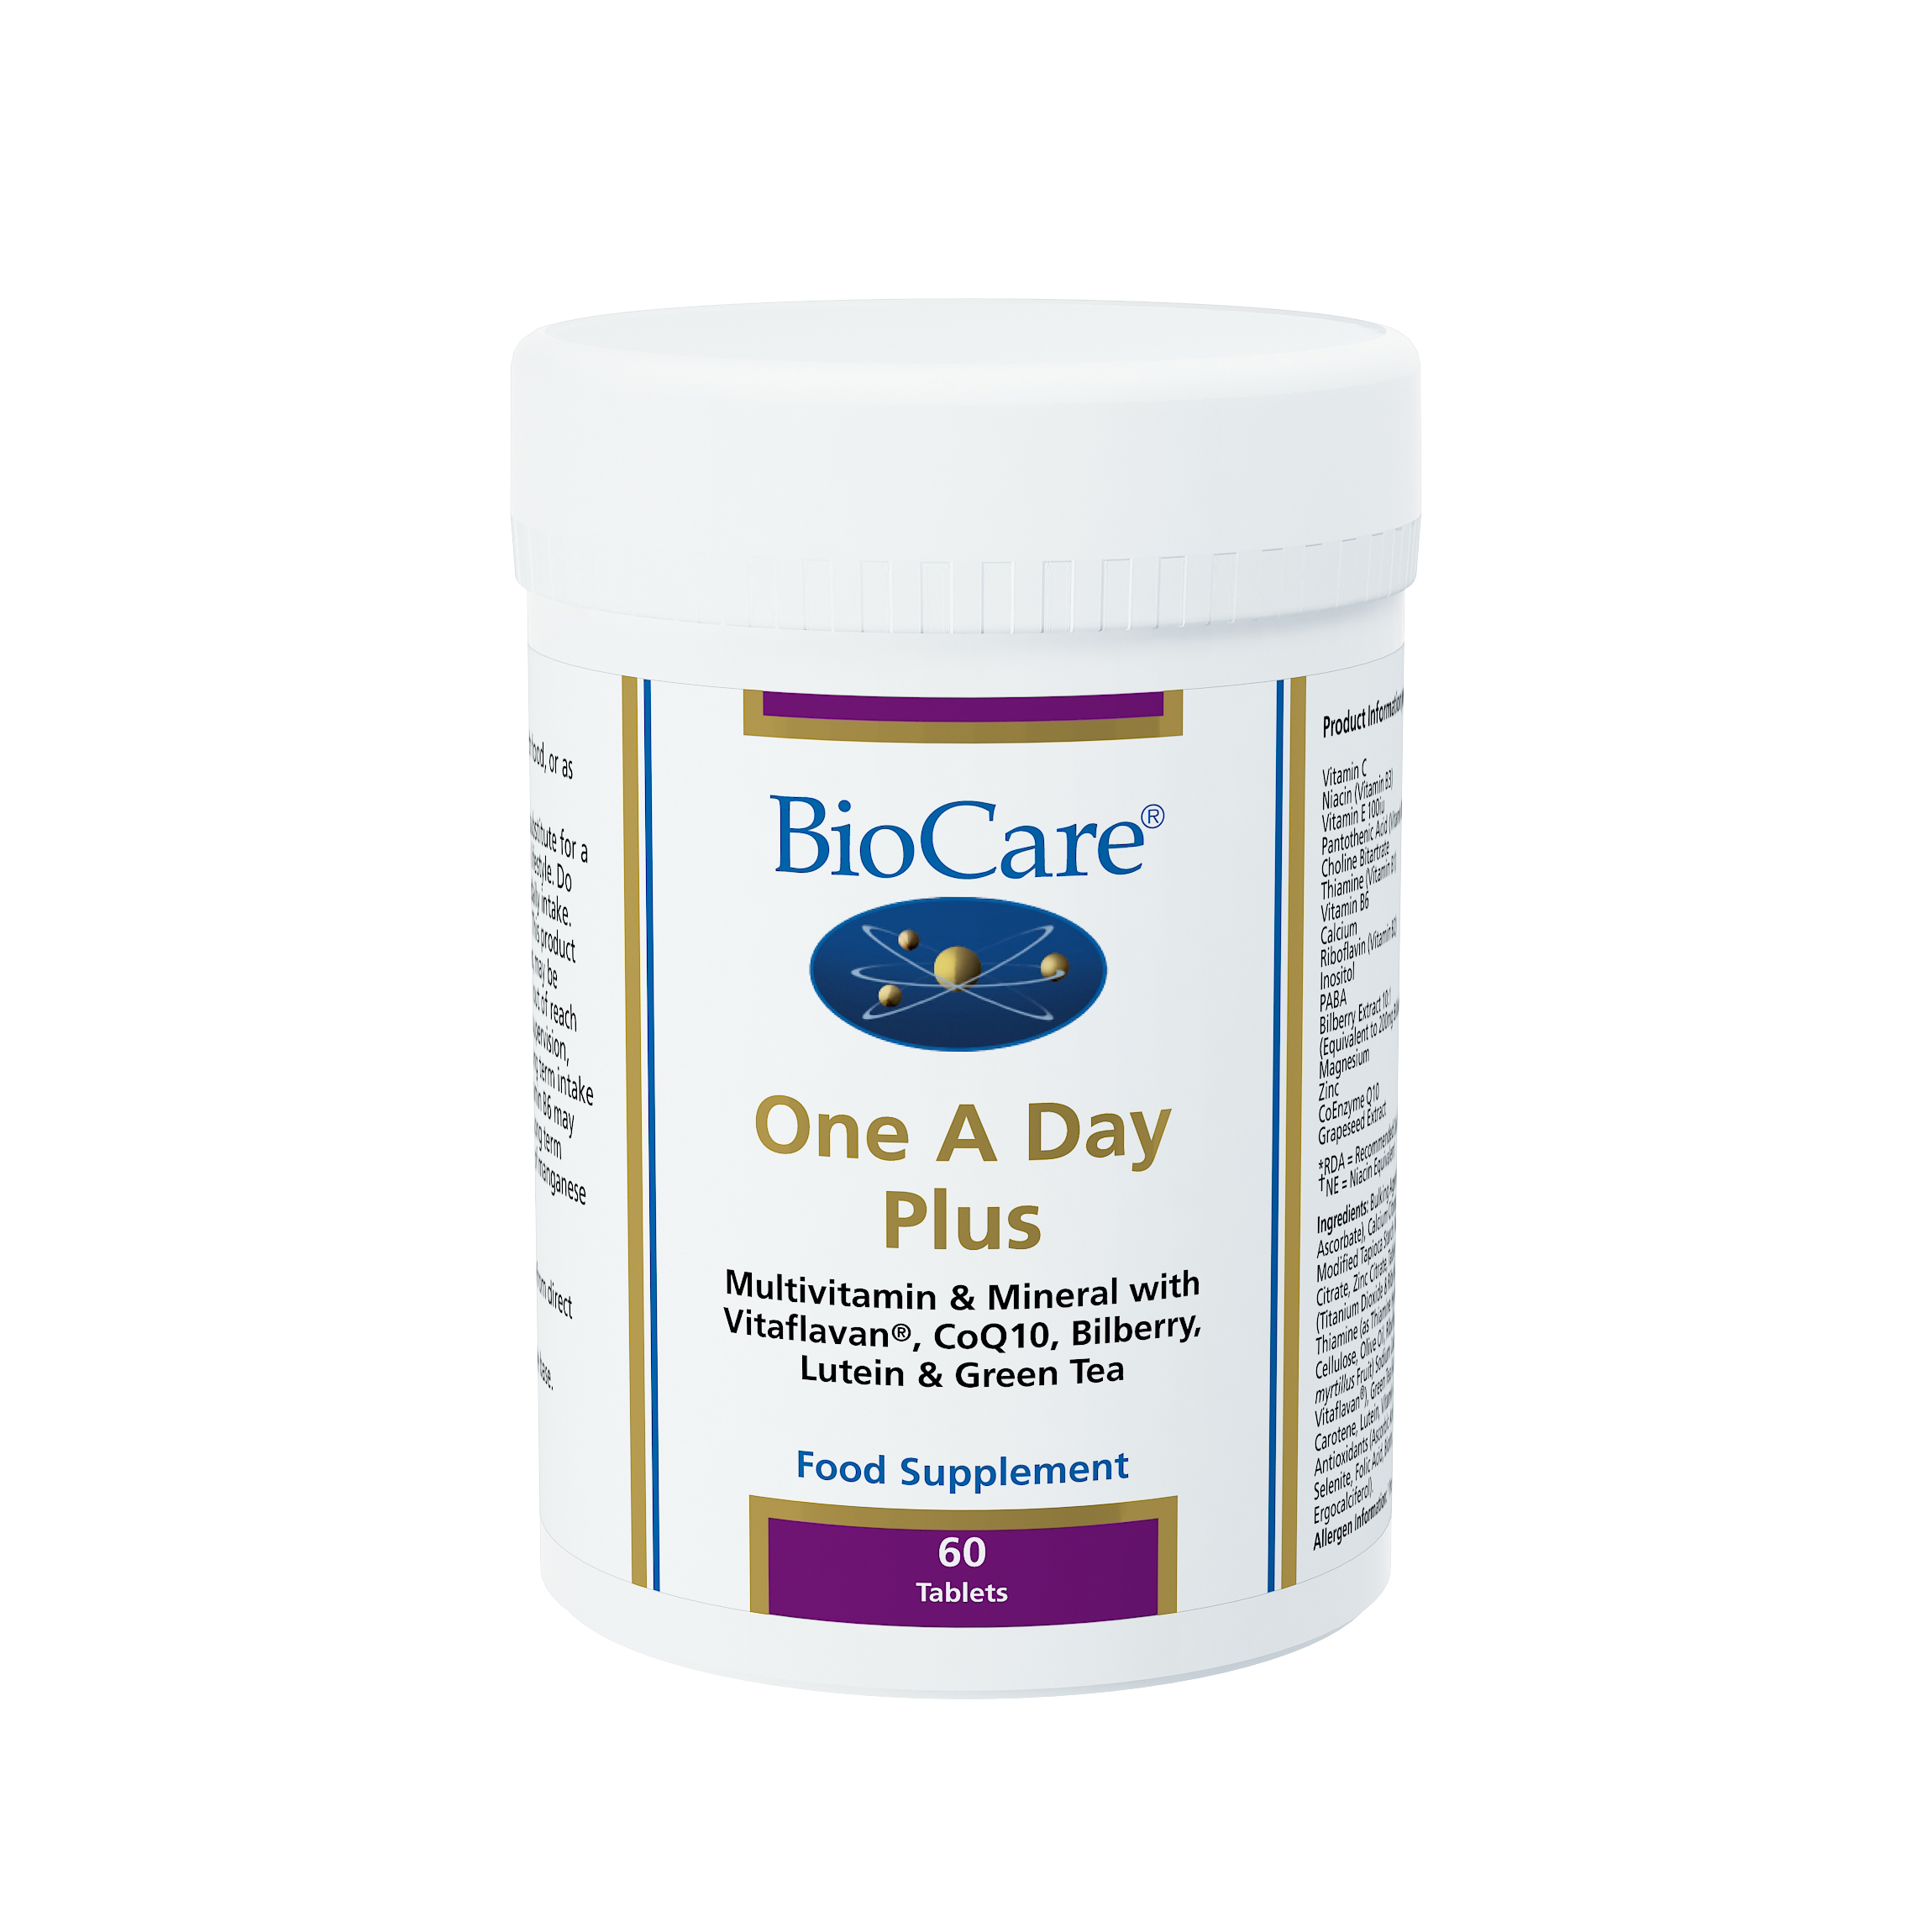 BioCare One A Day PLUS Multivitamins